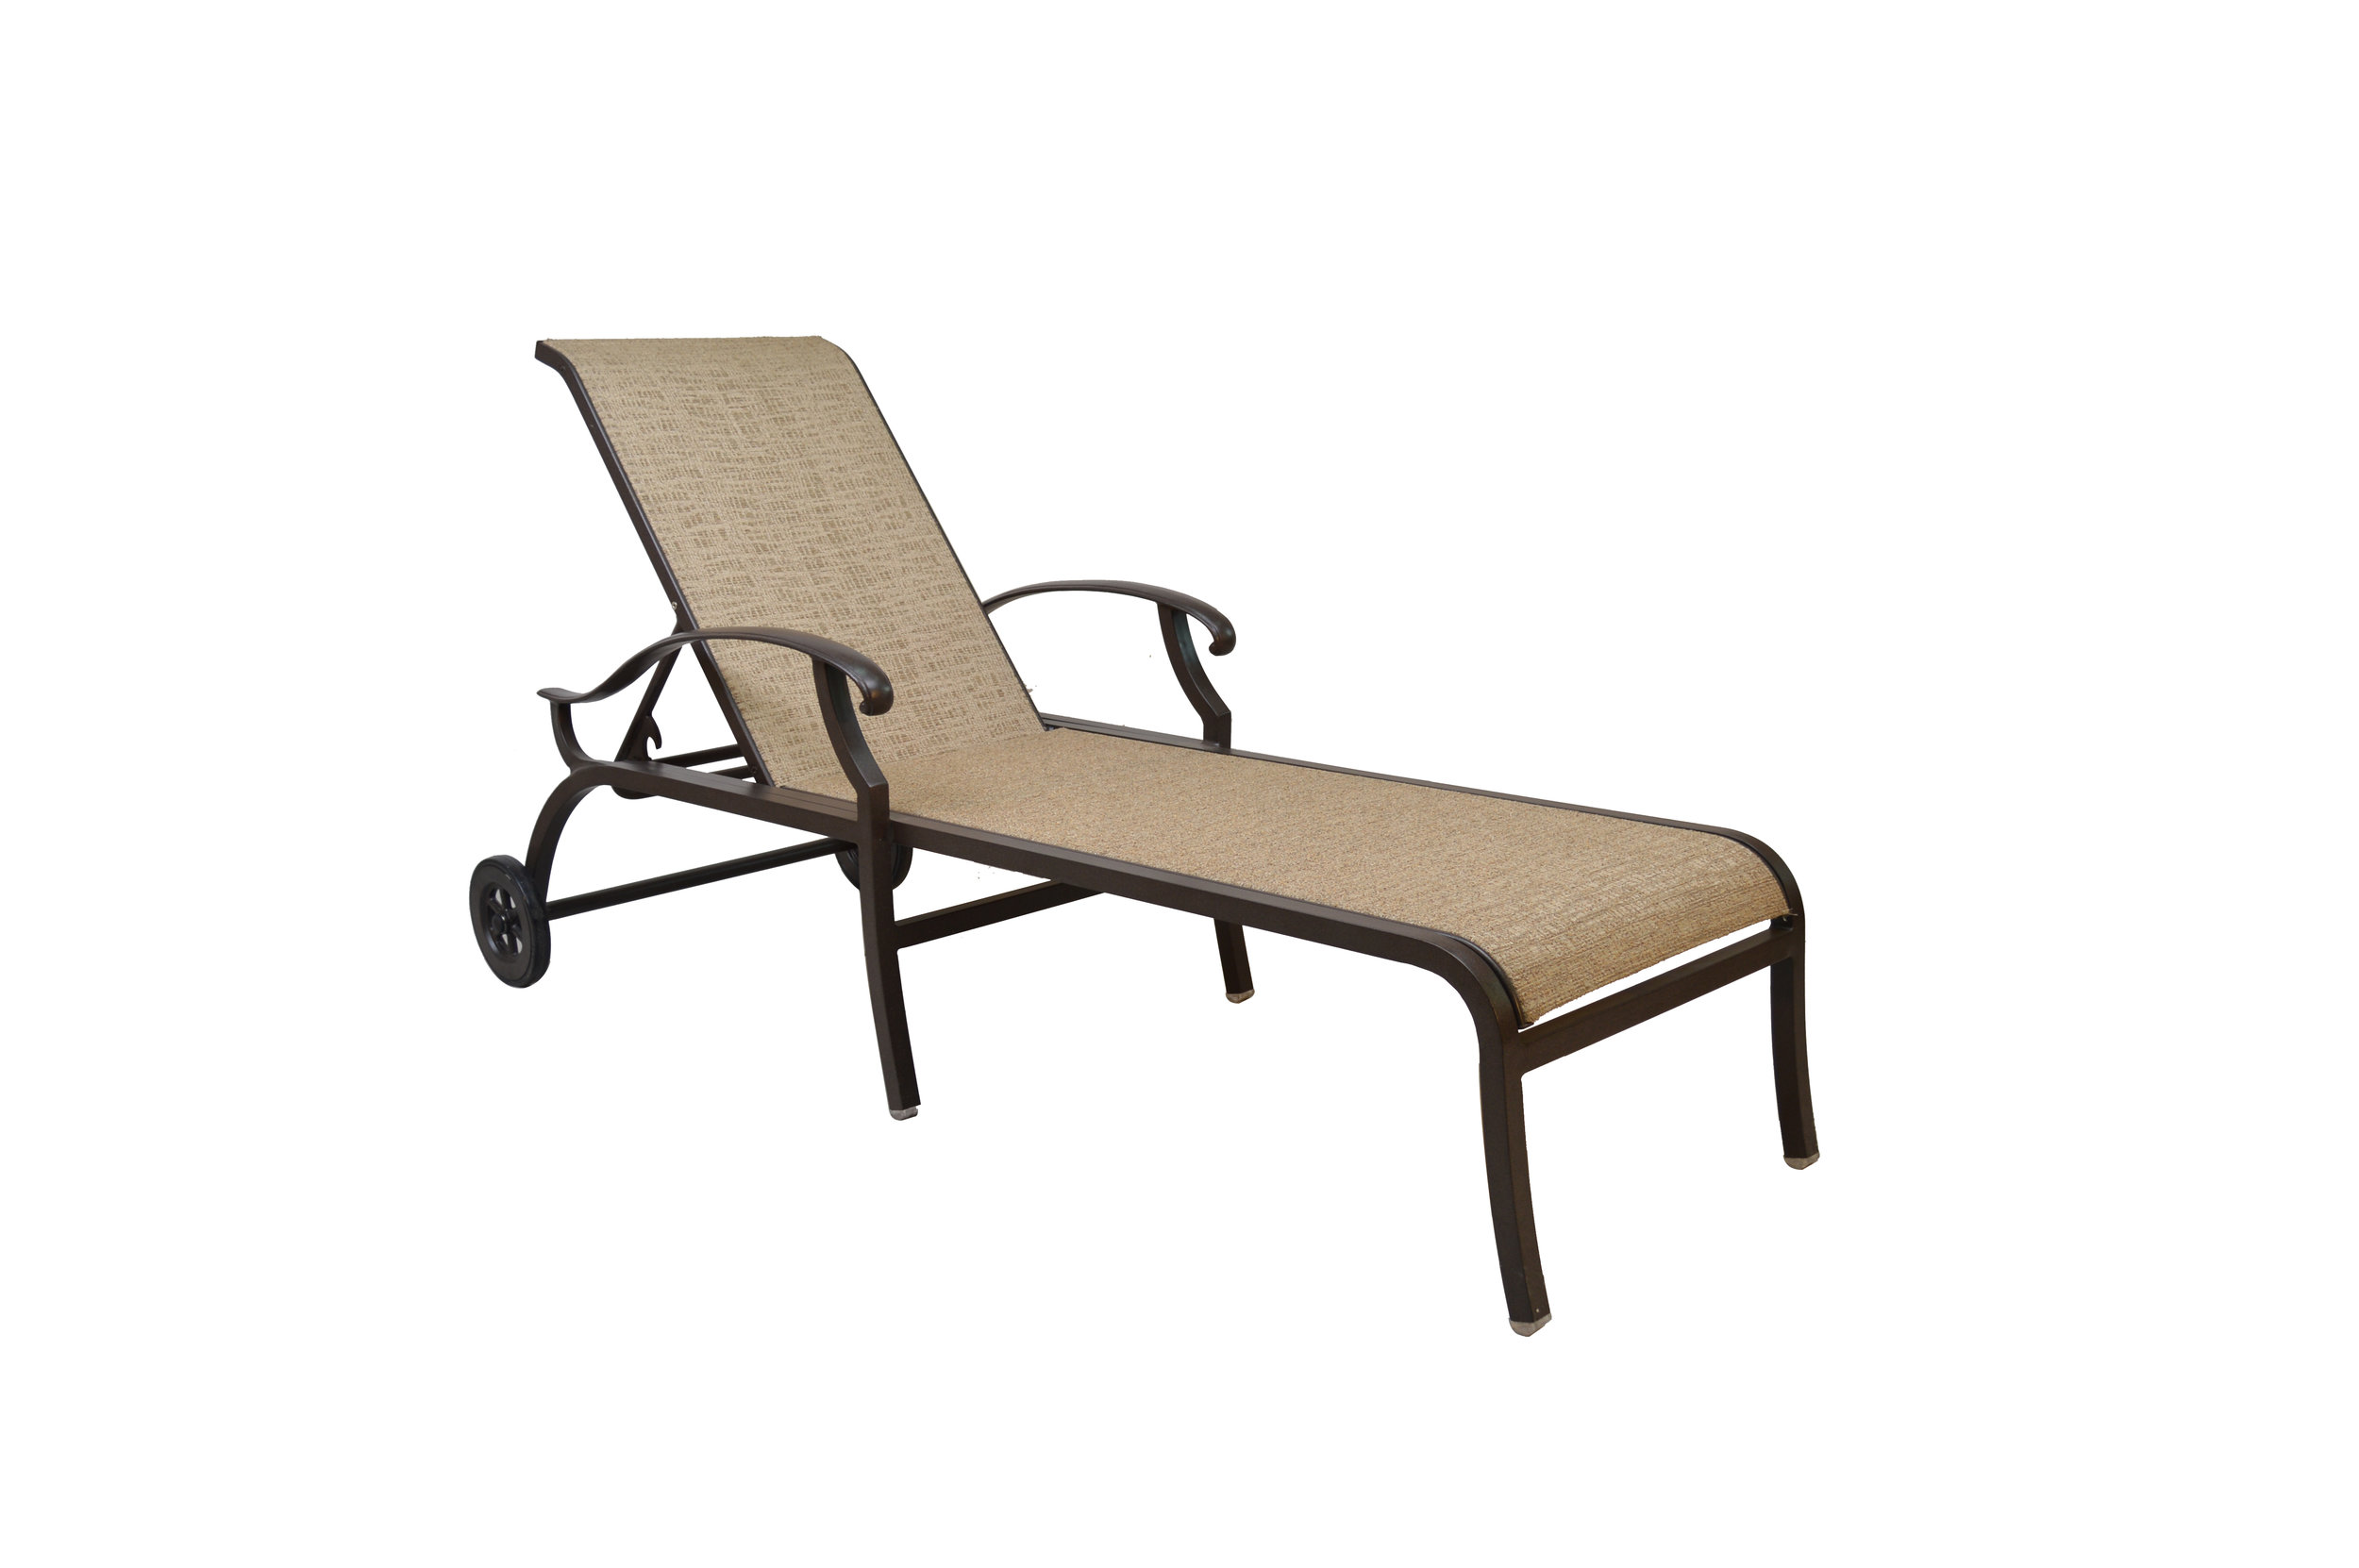 602352 Laguna Adjustable Chaise   29.8 x 83.2 x 24.2